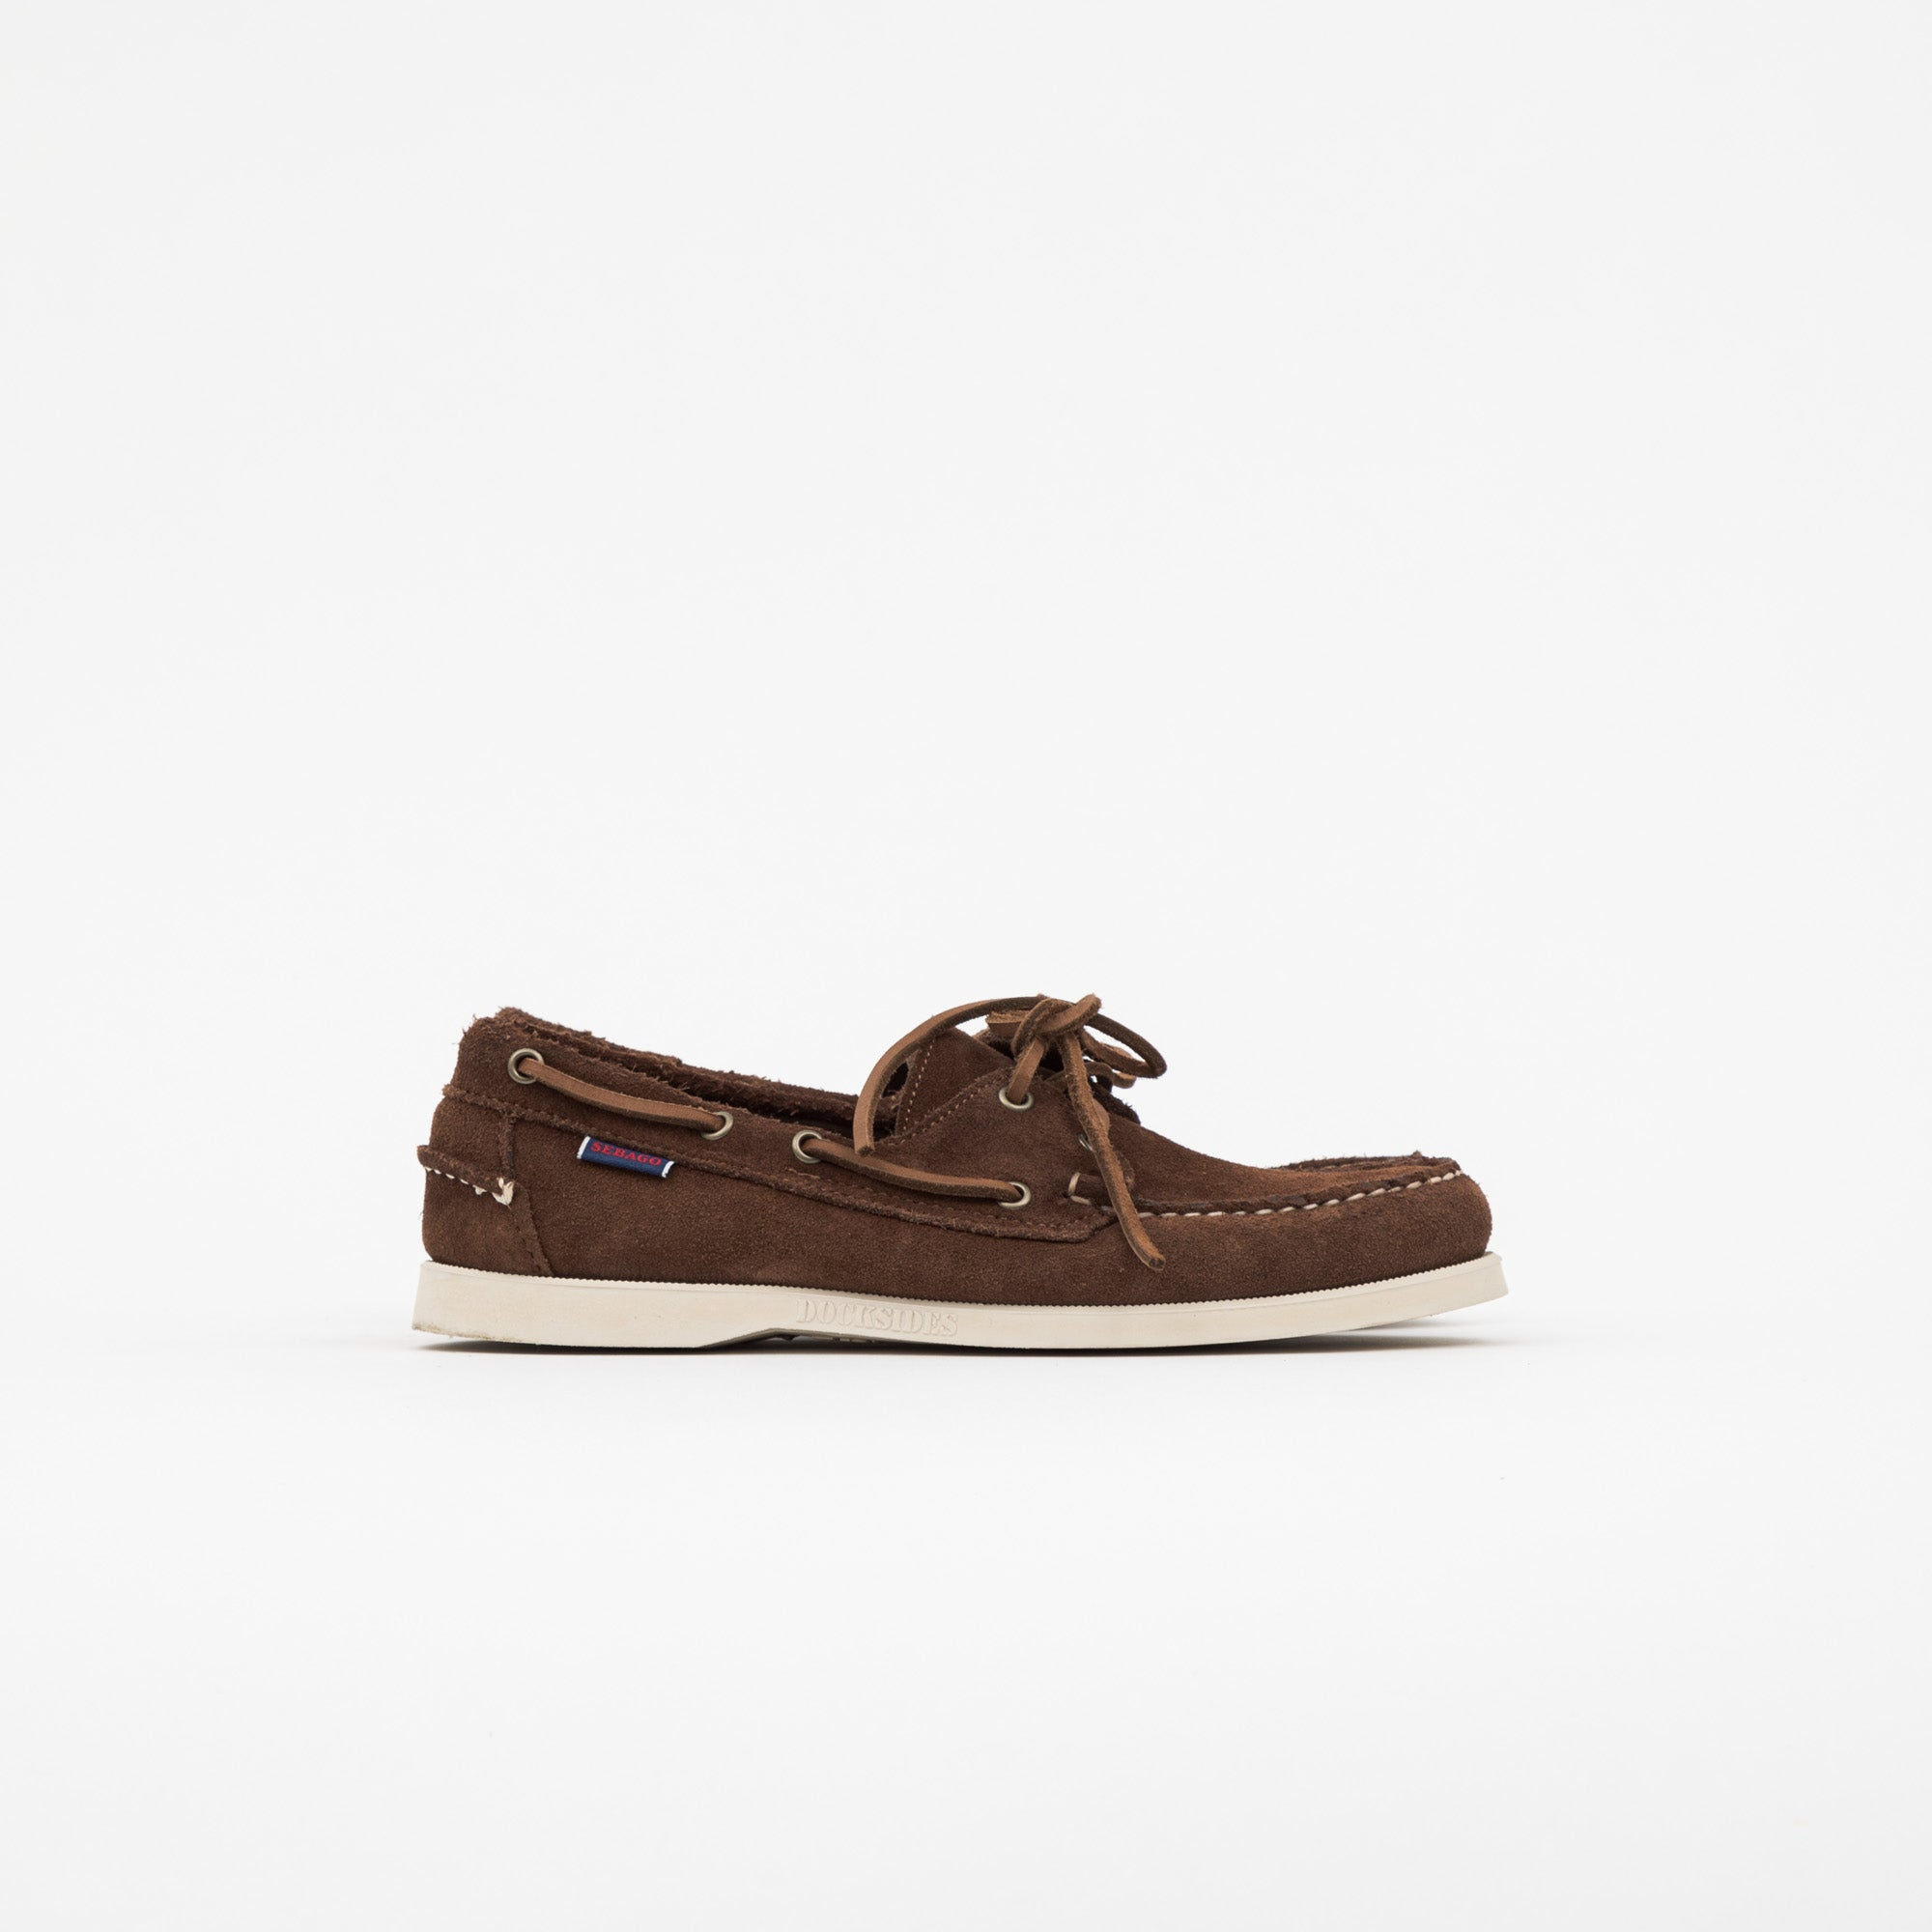 Sebago Docksides Suede Boat Shoes